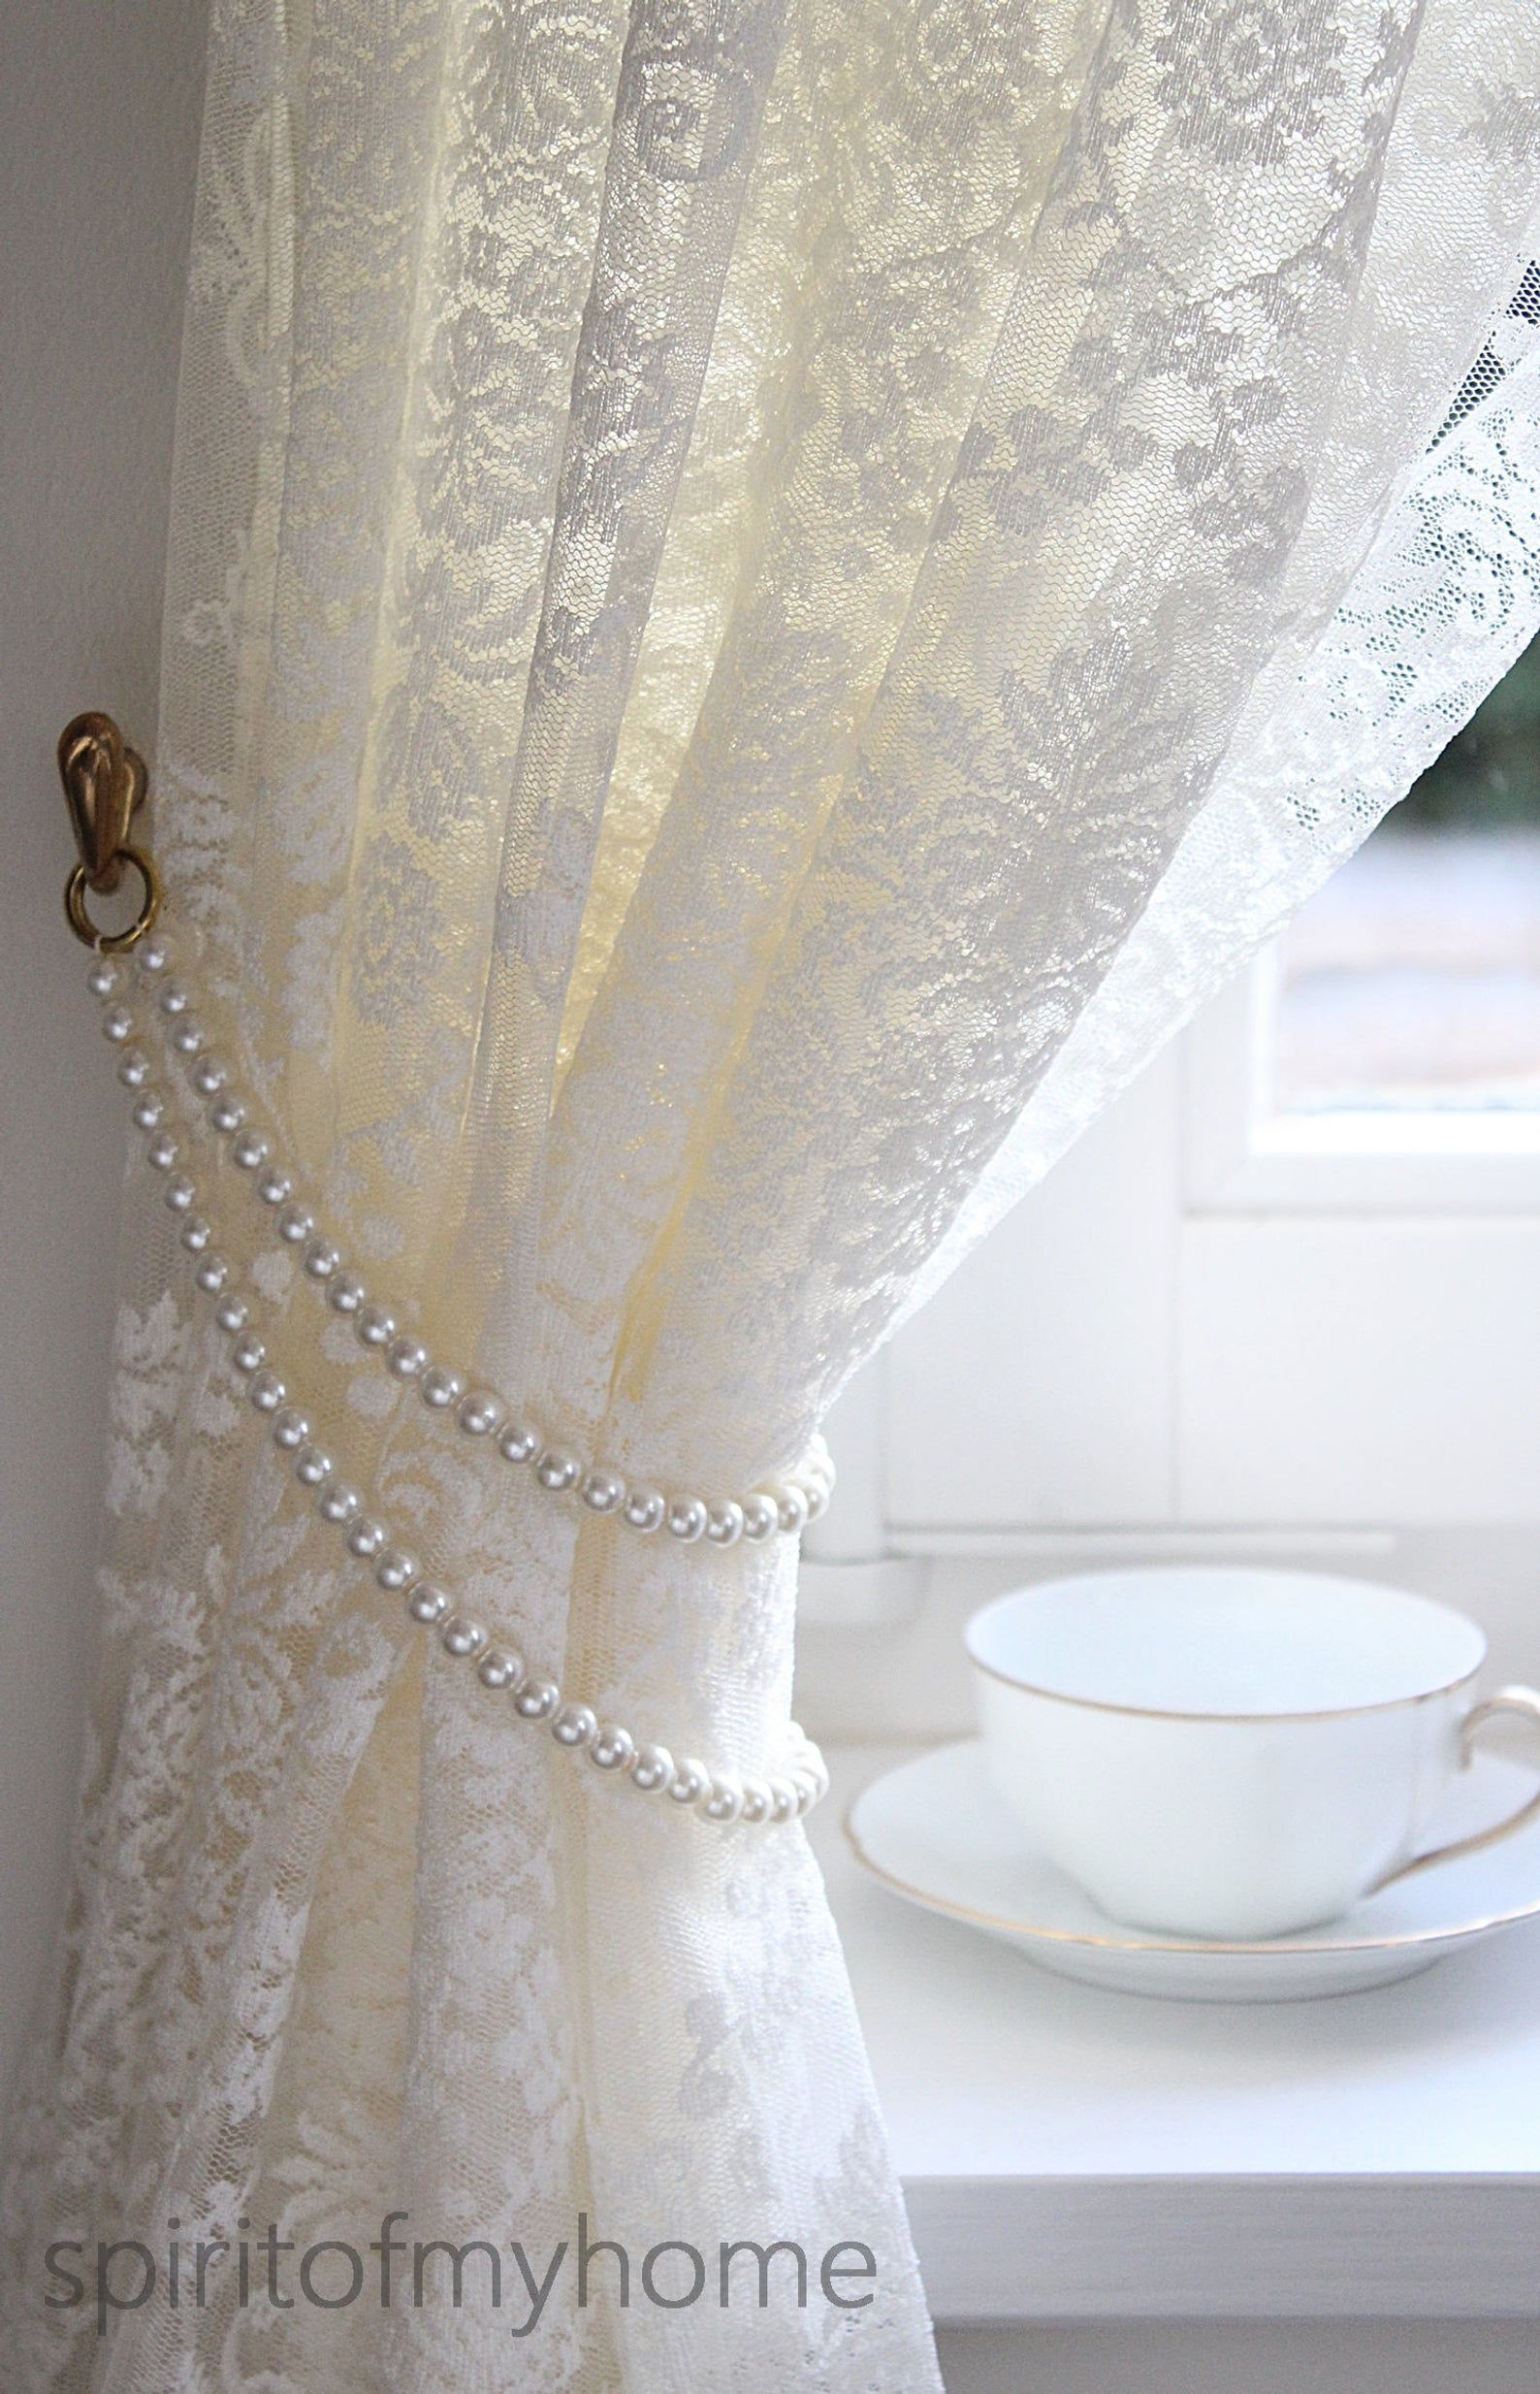 Free Shipping 'TAMMY' Shabby Chic doubled Styled curtain tieback handmade metal rings Length #homedecor #decorideas